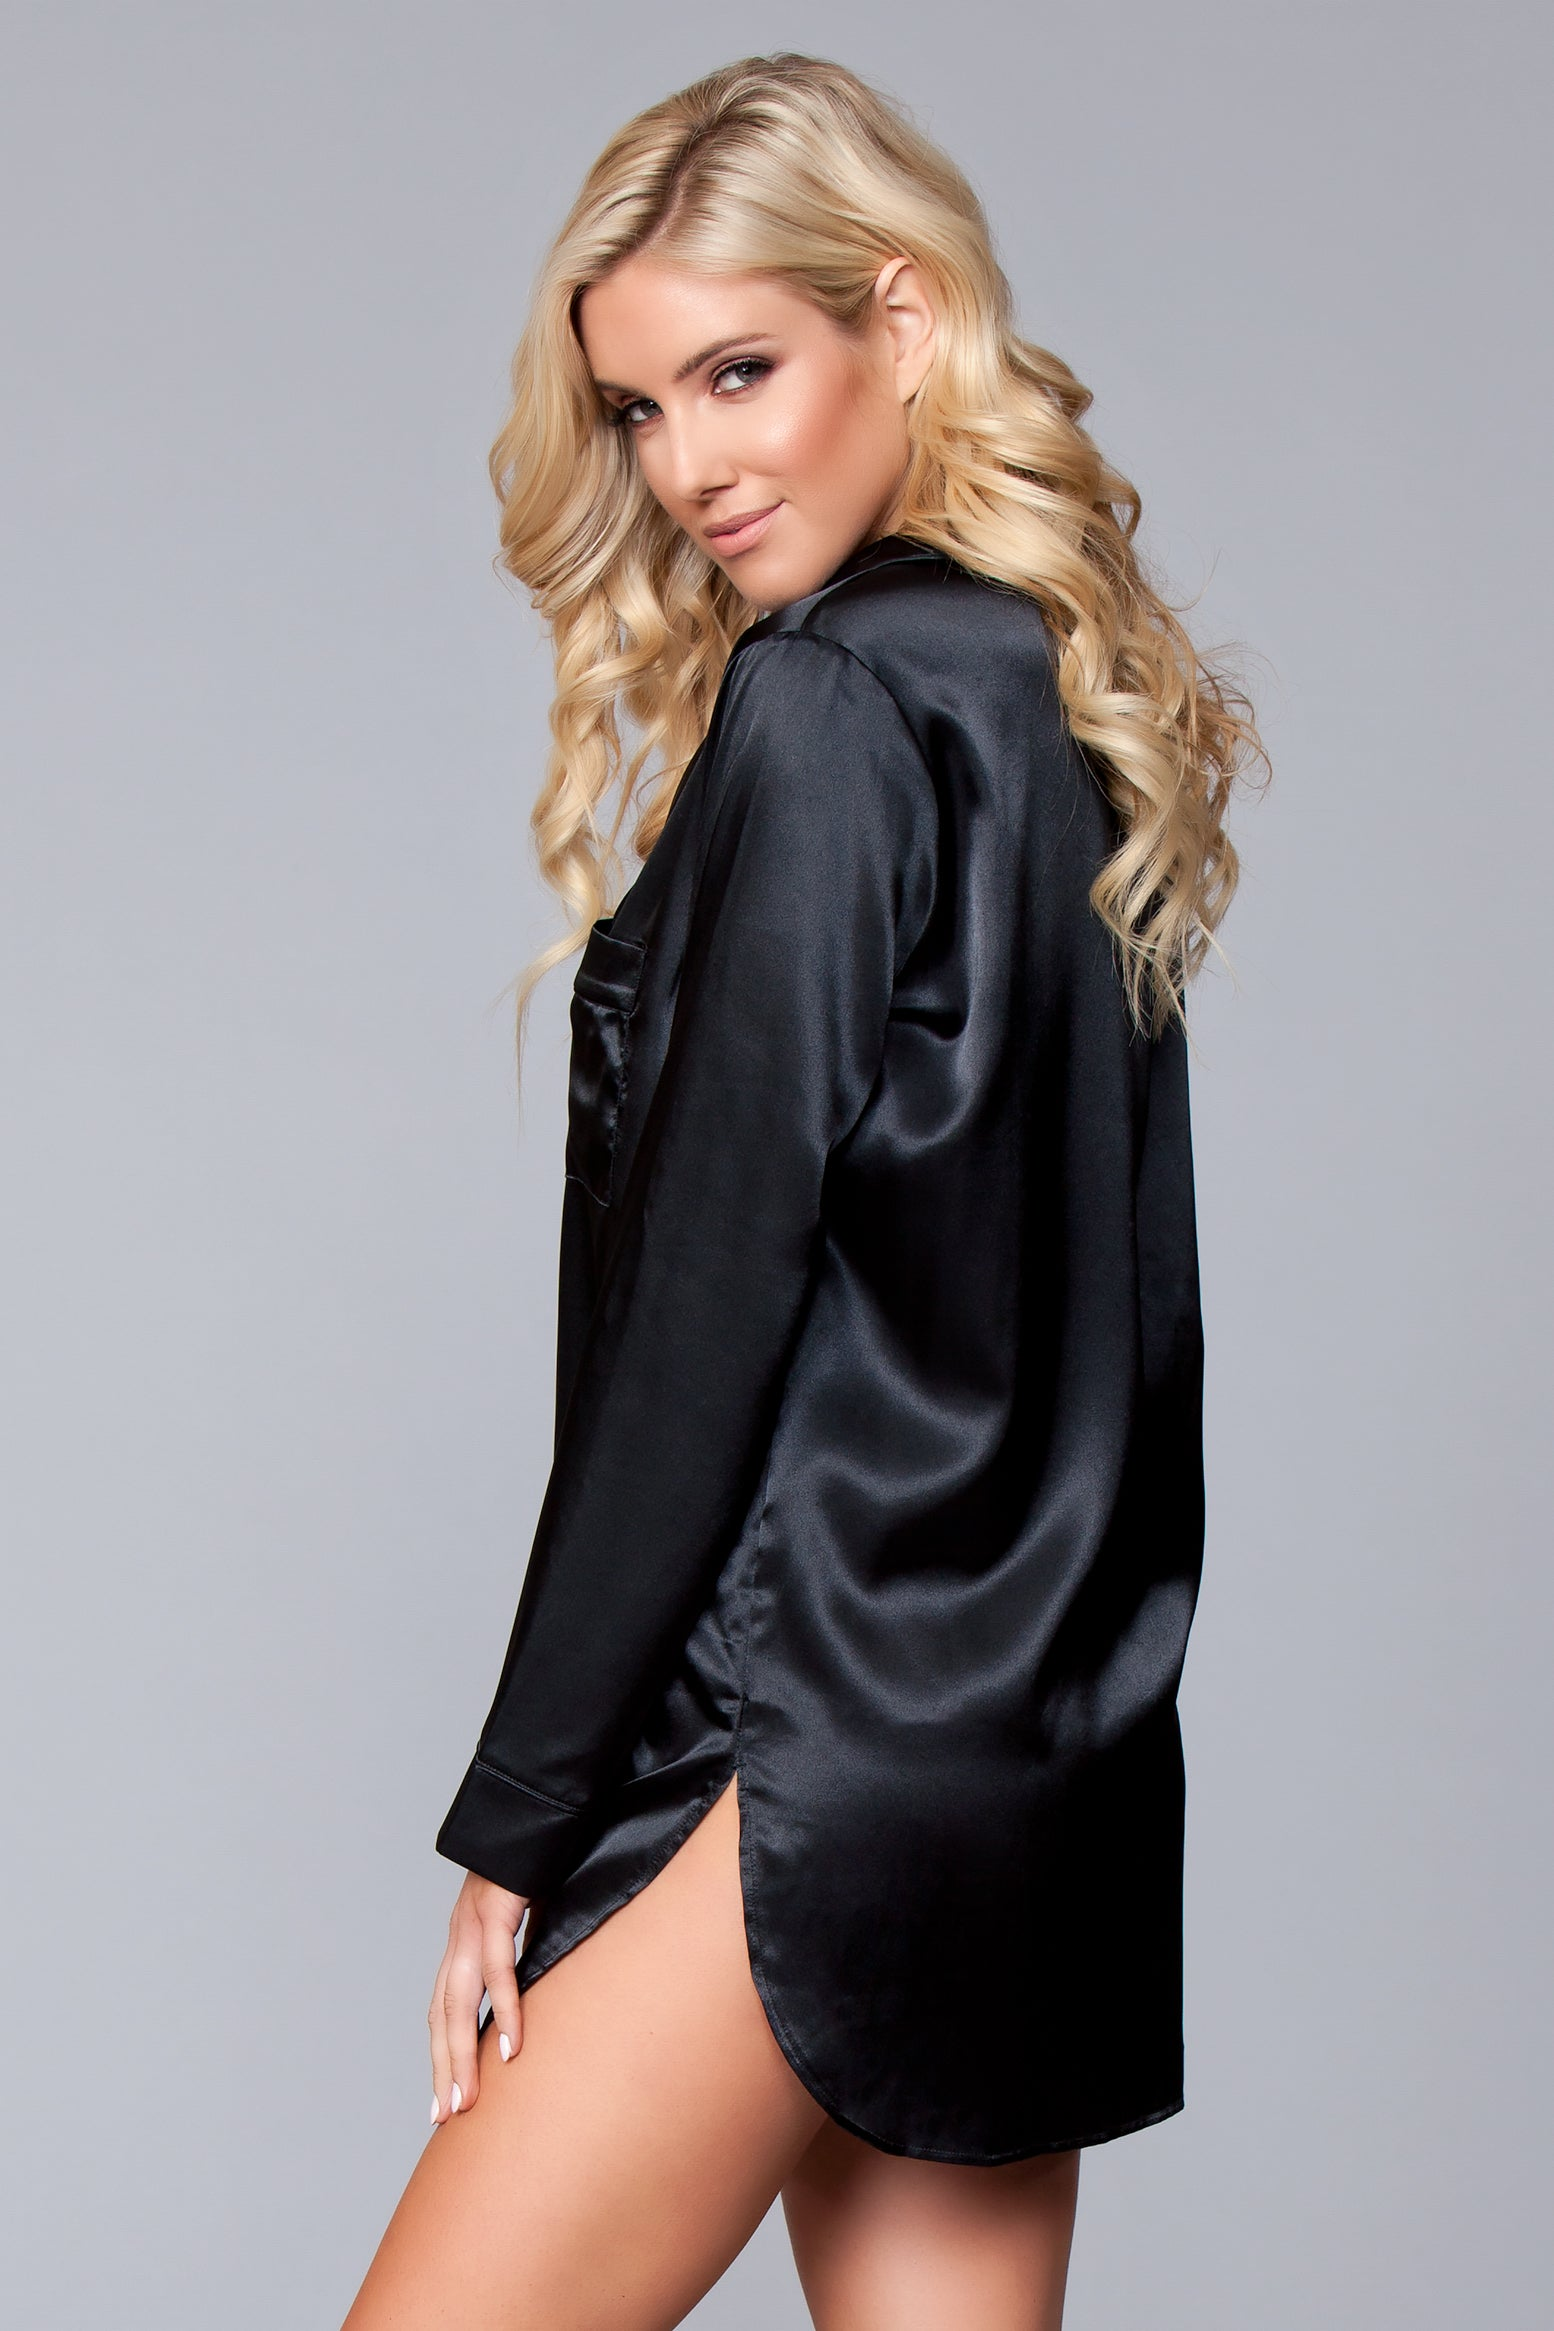 LALA TRENDS Be Wicked Kimberly Satin Sleepshirt Black Sleepwear $39.95